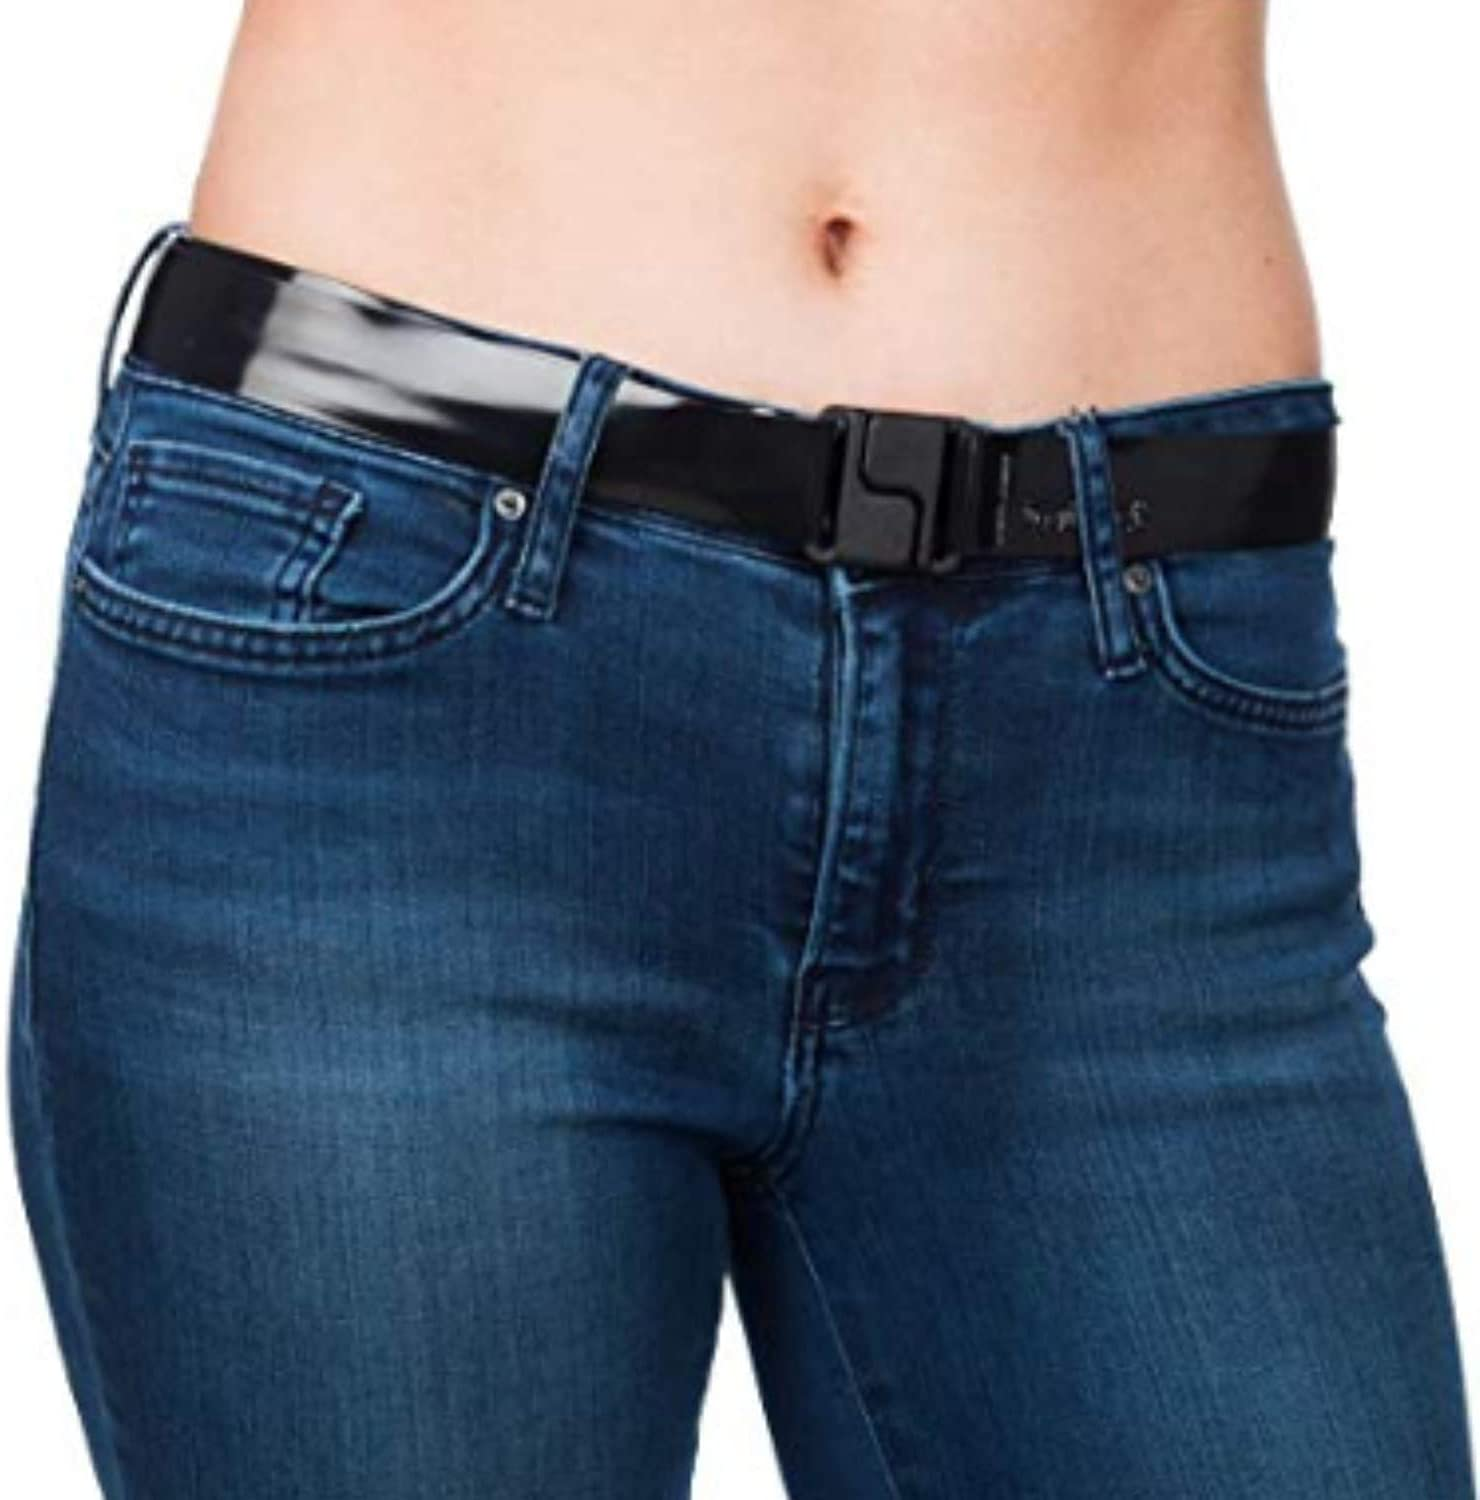 Invisibelt Skinny Lay Flat Women's Special price for a limited time Belt No - Buckle Packs 2 online shop